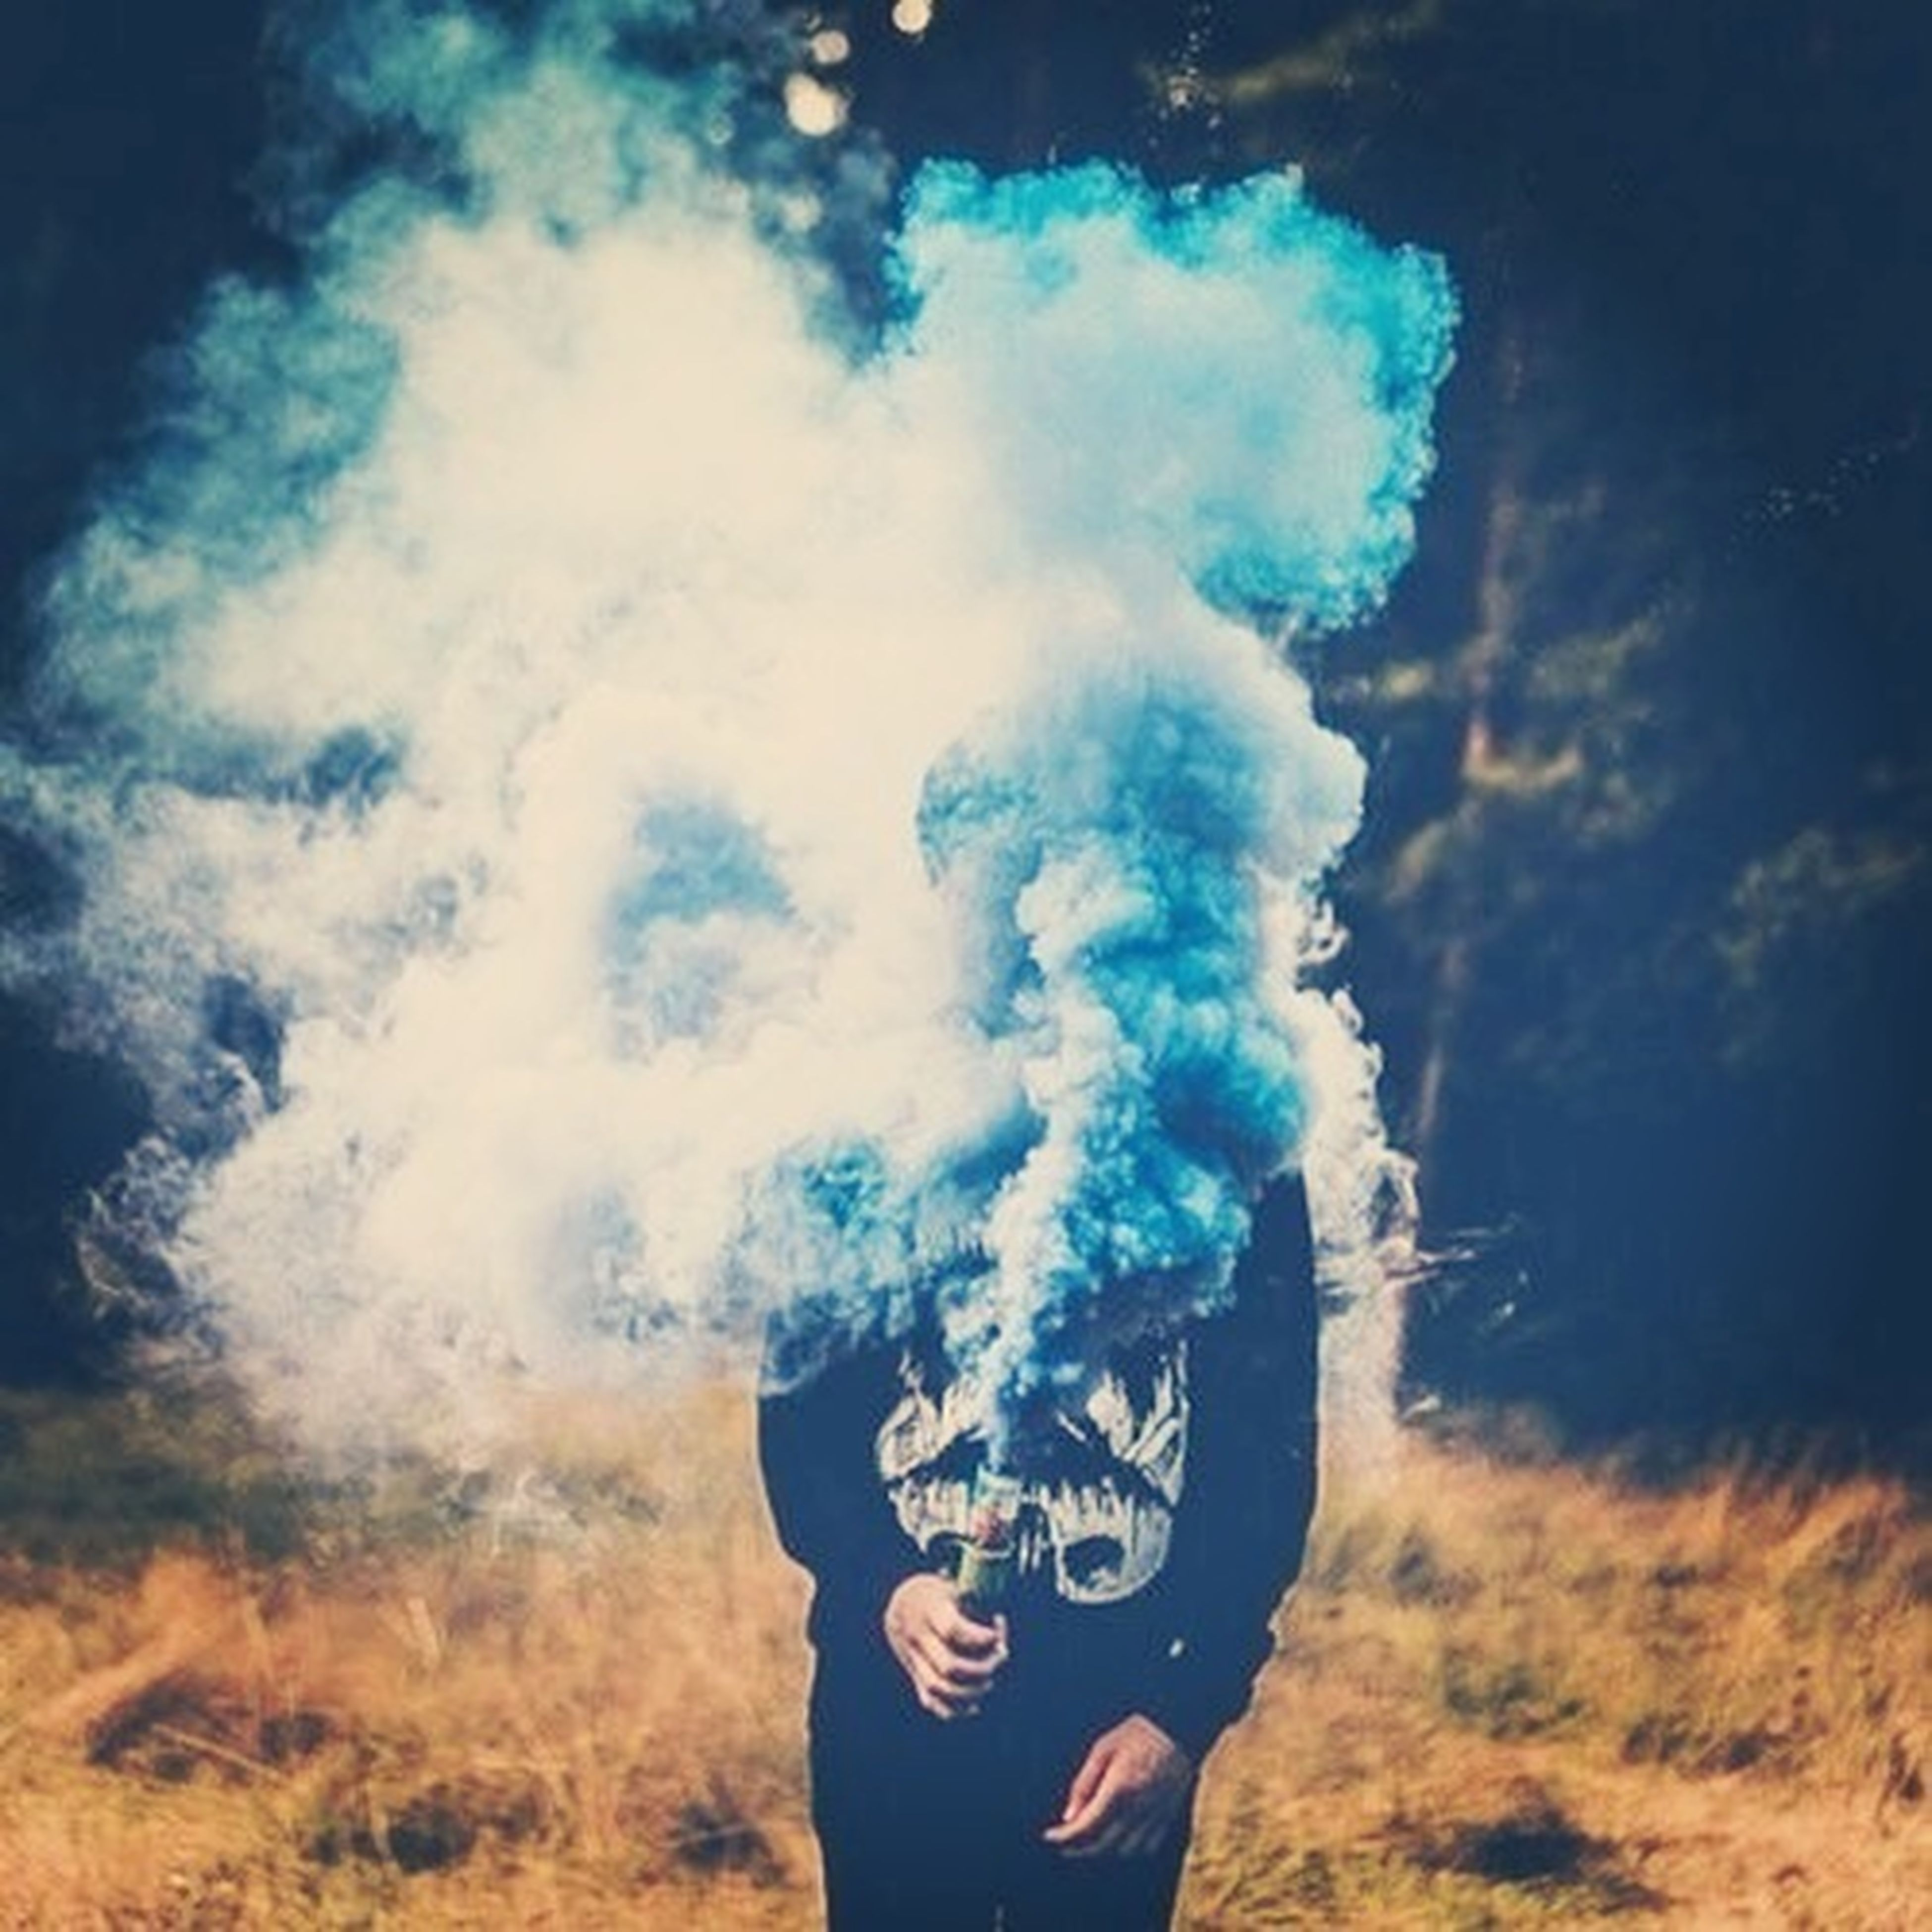 leisure activity, lifestyles, sky, cloud - sky, standing, blue, men, waist up, cloudy, casual clothing, unrecognizable person, cloud, three quarter length, headshot, outdoors, day, holding, smoke - physical structure